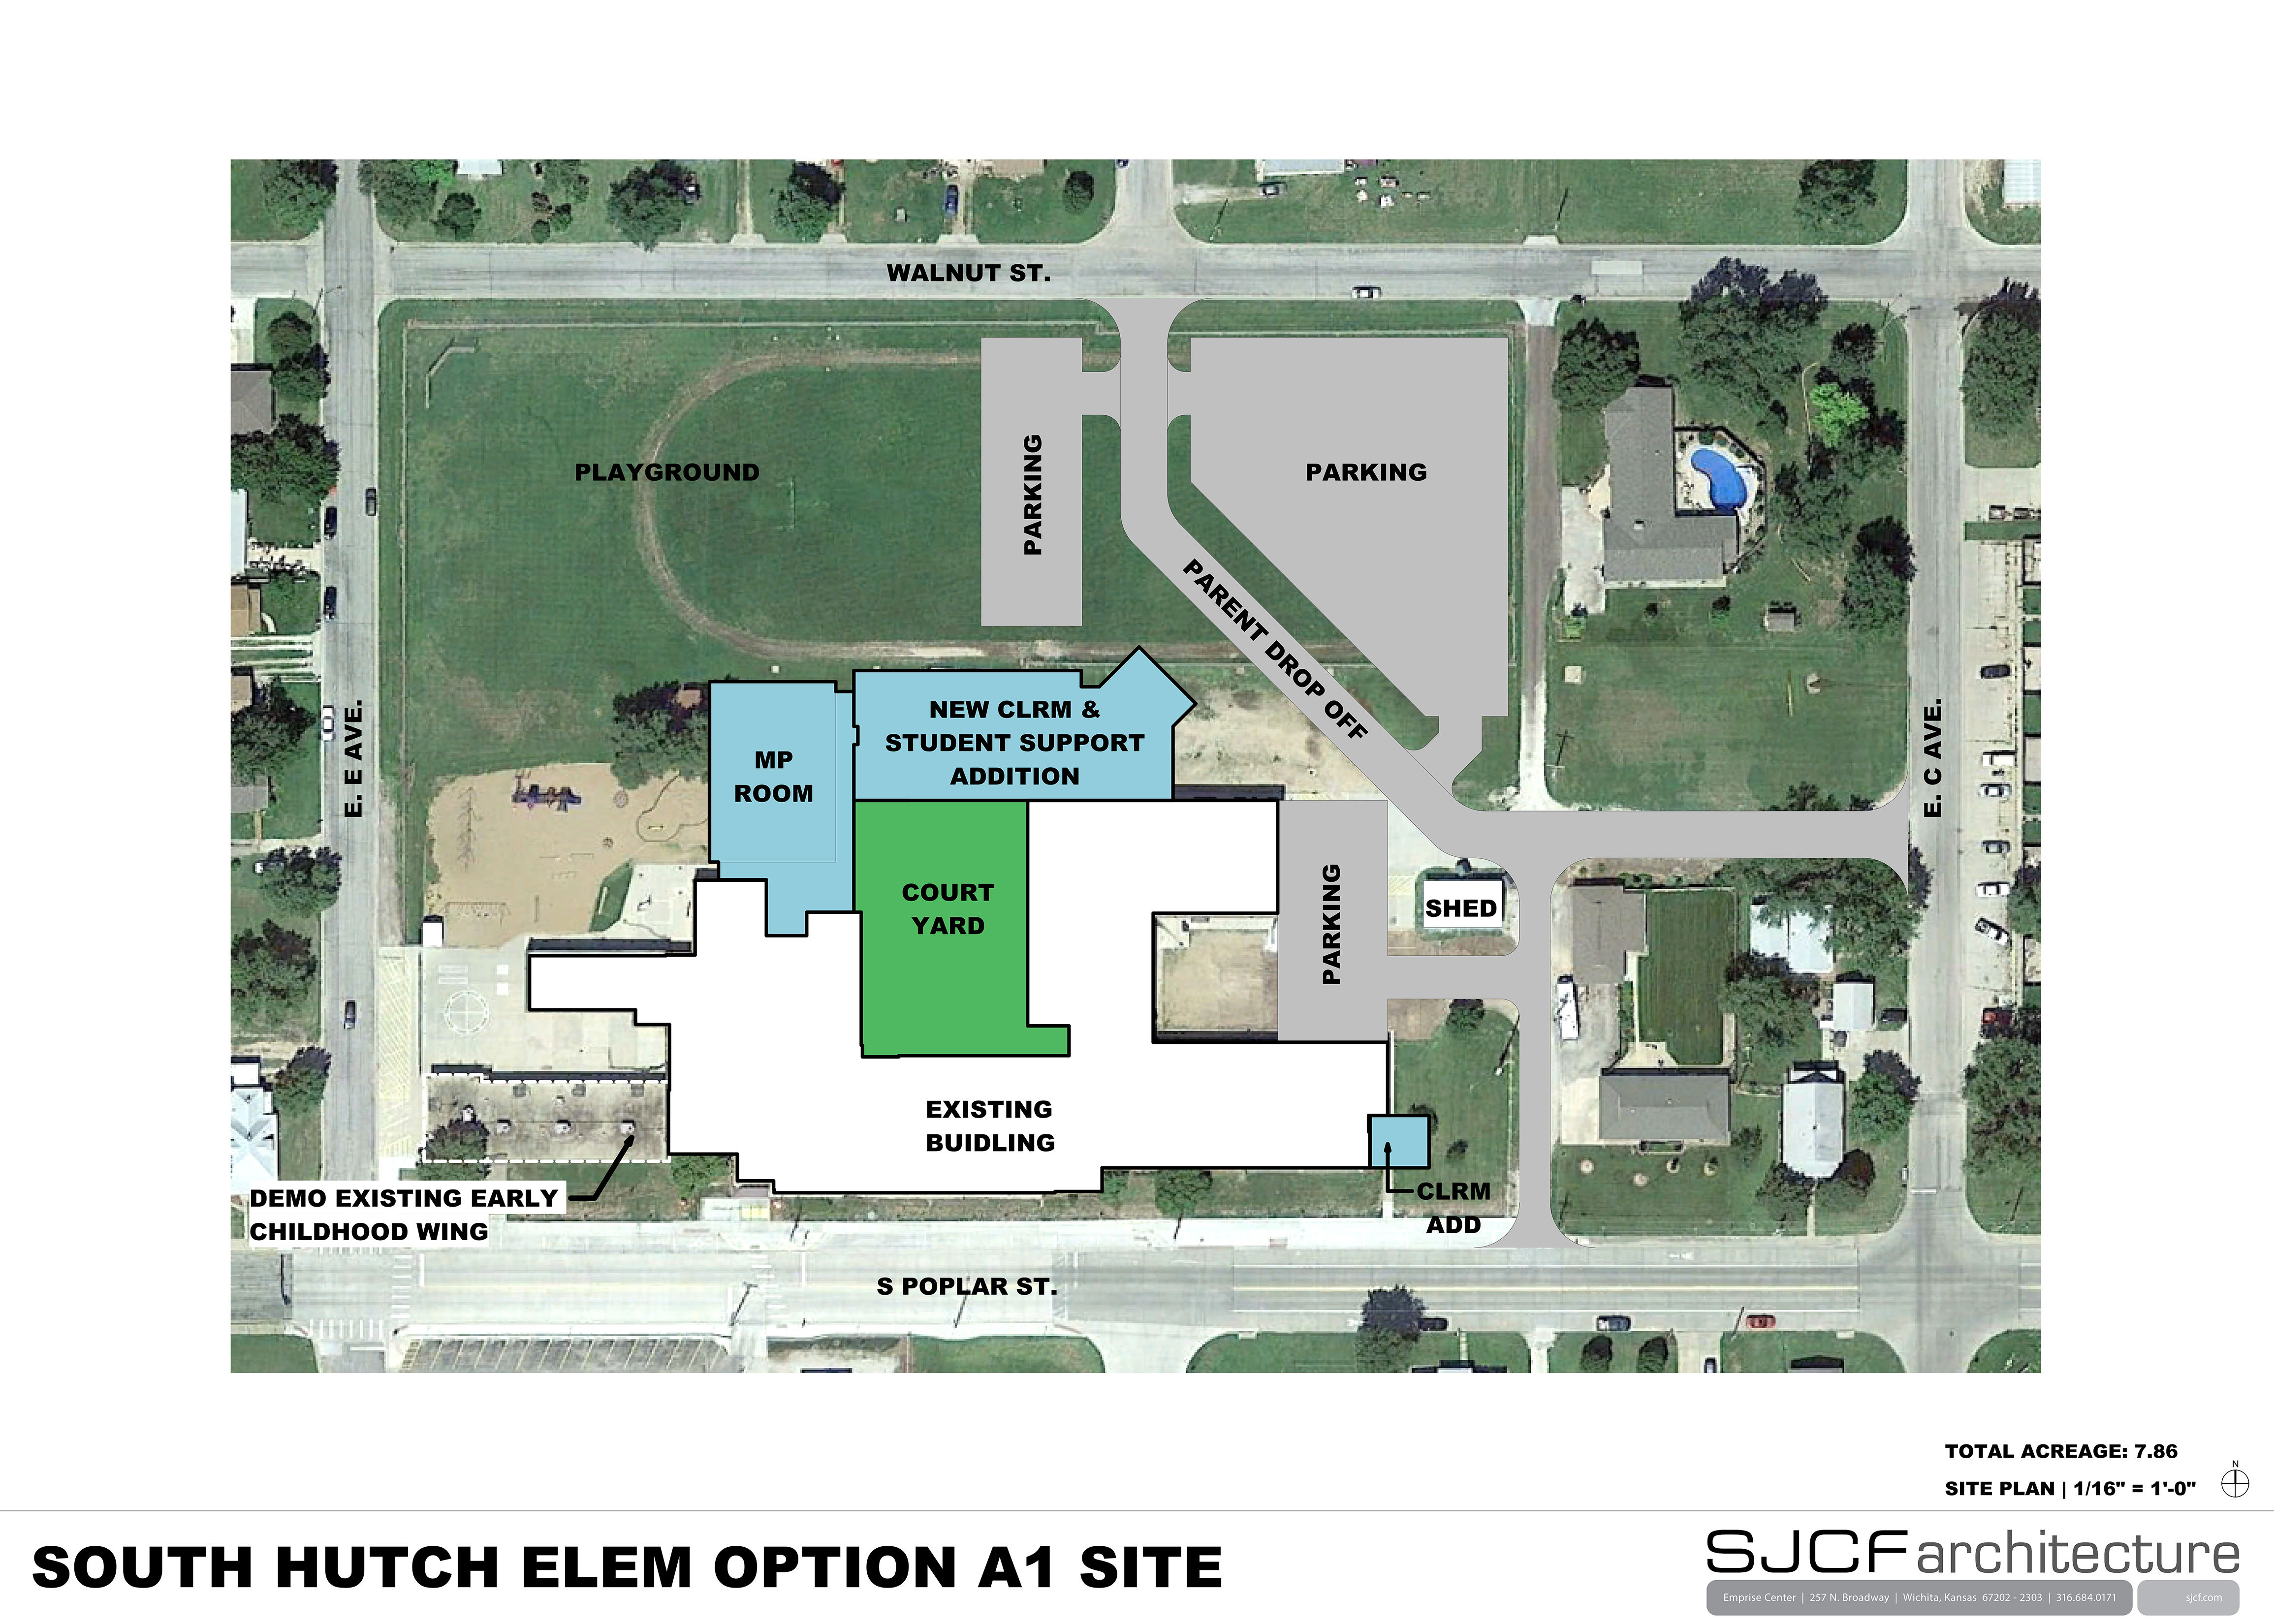 South Hutchinson Elem Site Plan